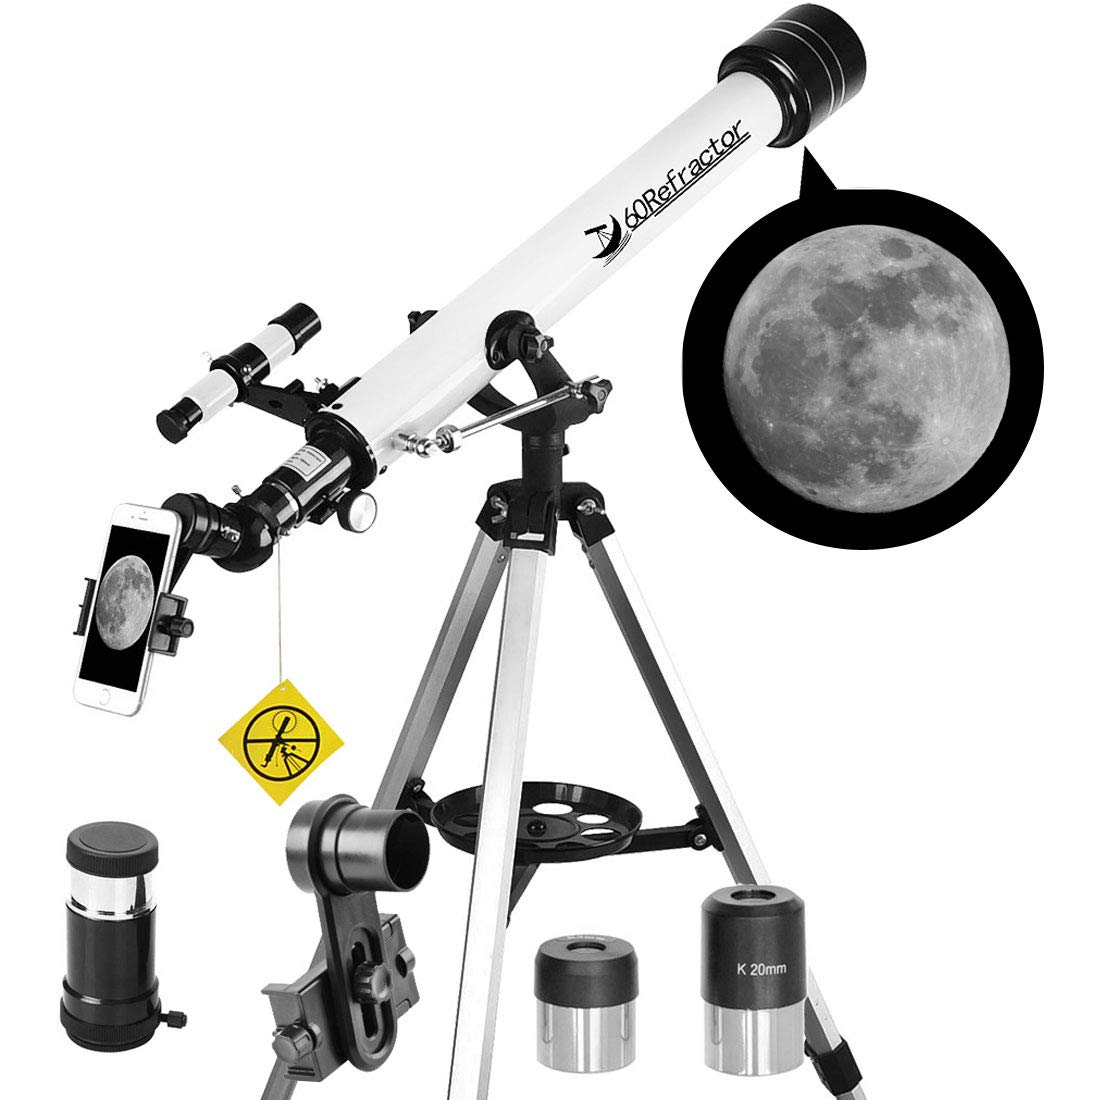 Telescope 60mm Apeture 700mm AZ Telescope - Refractor & Travel Scope for Beginners and Kids to Observe Moon and Planet with Tripod and 10mm Eyepiece Smartphone Adapter by DoubleSun